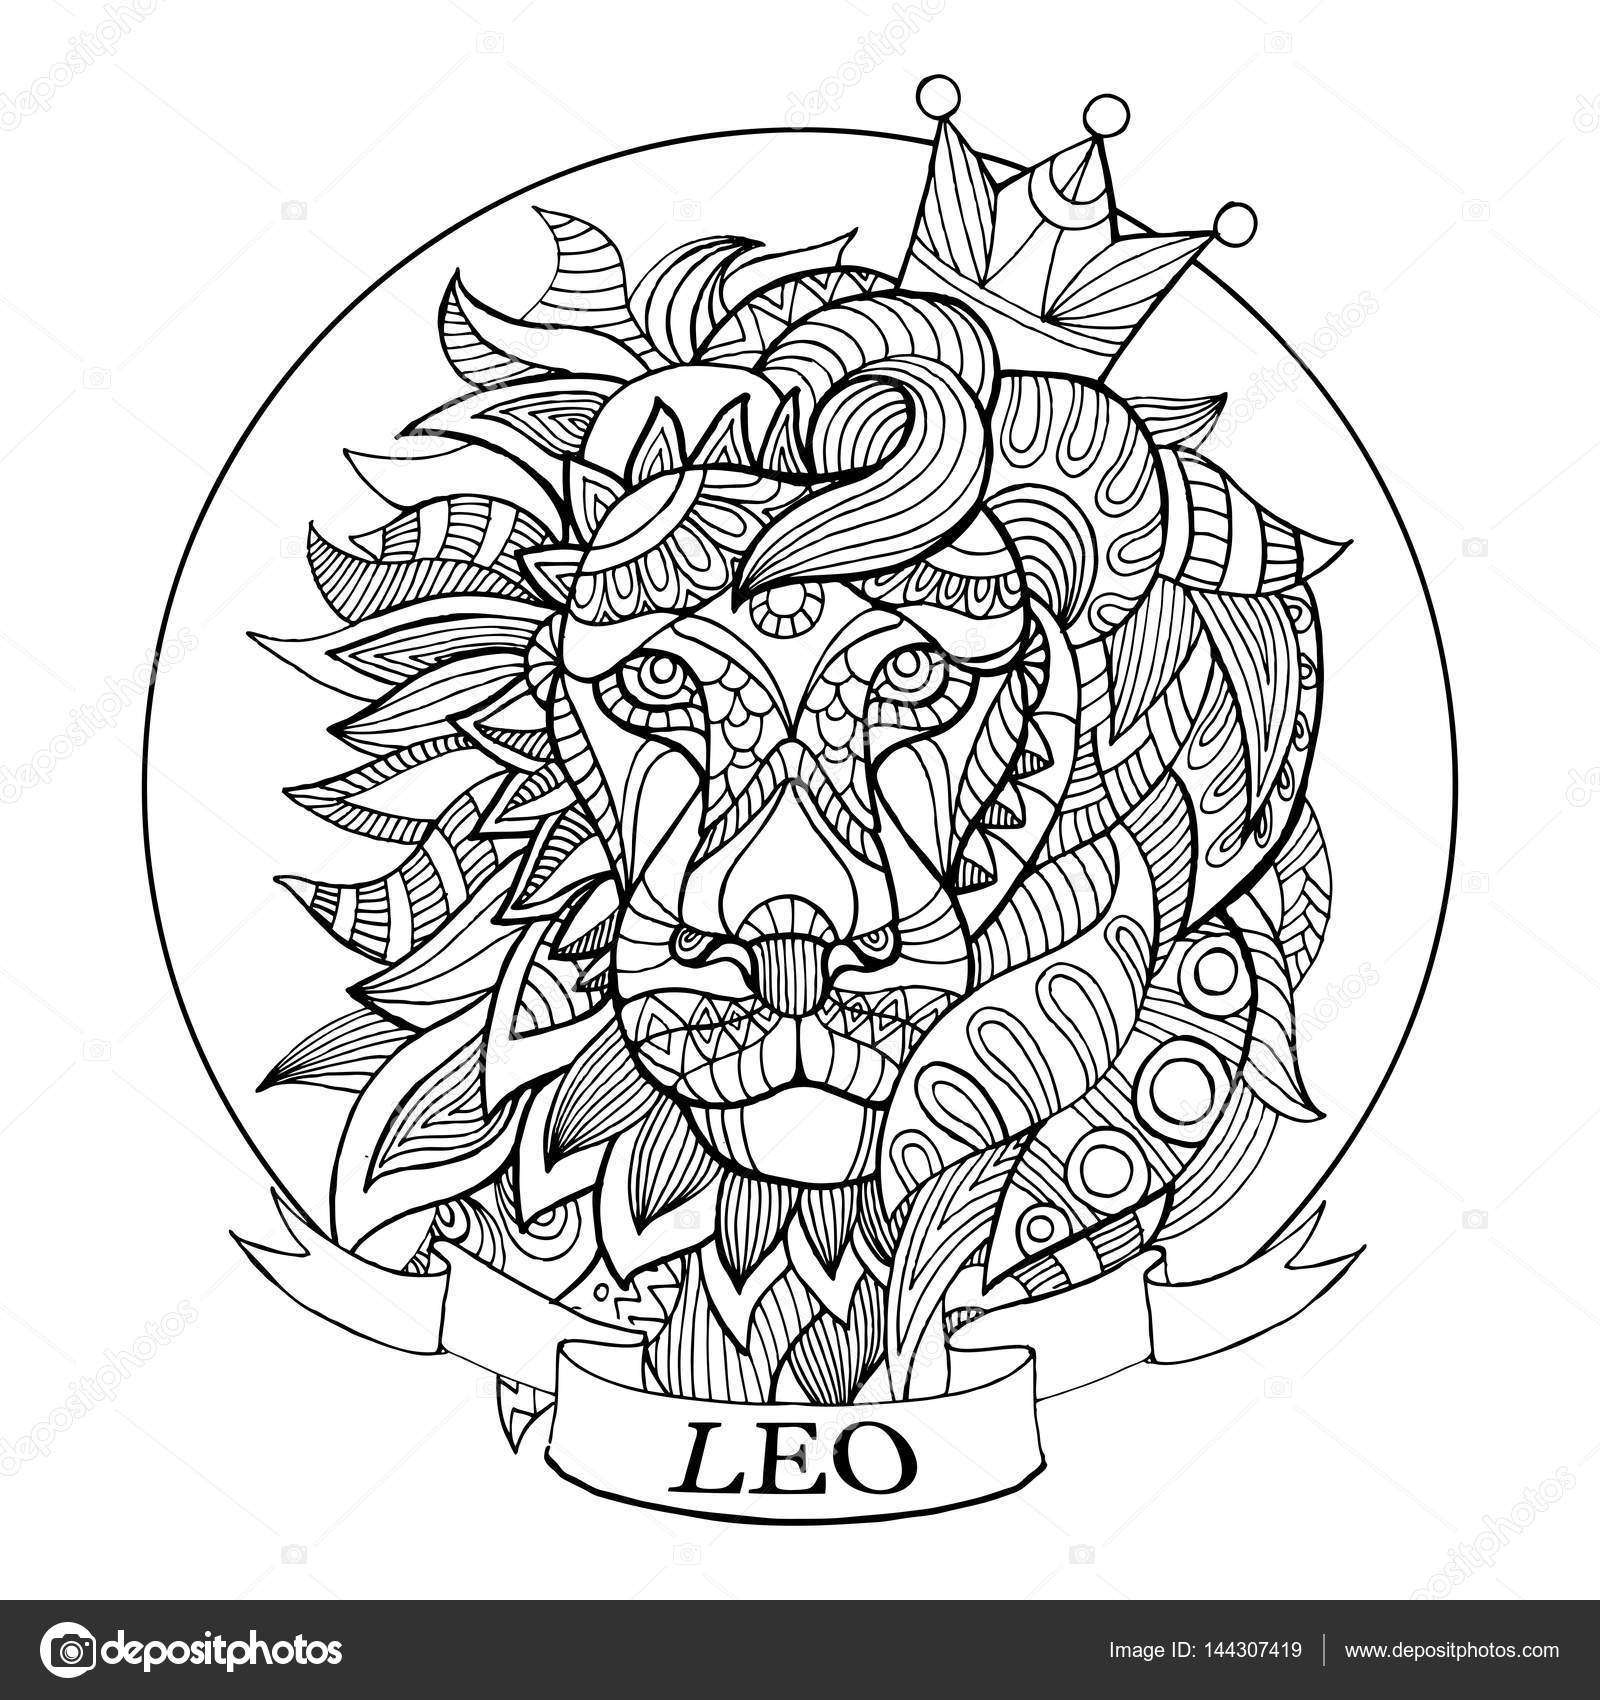 Radiator 6255003 OEM 9425001203 2303 2803 2903 also Stock Illustration Lion Zodiac Sign Coloring Book likewise Index furthermore 195512 as well Mag ic Filter Division Ningbo Newland Mag. on 250d